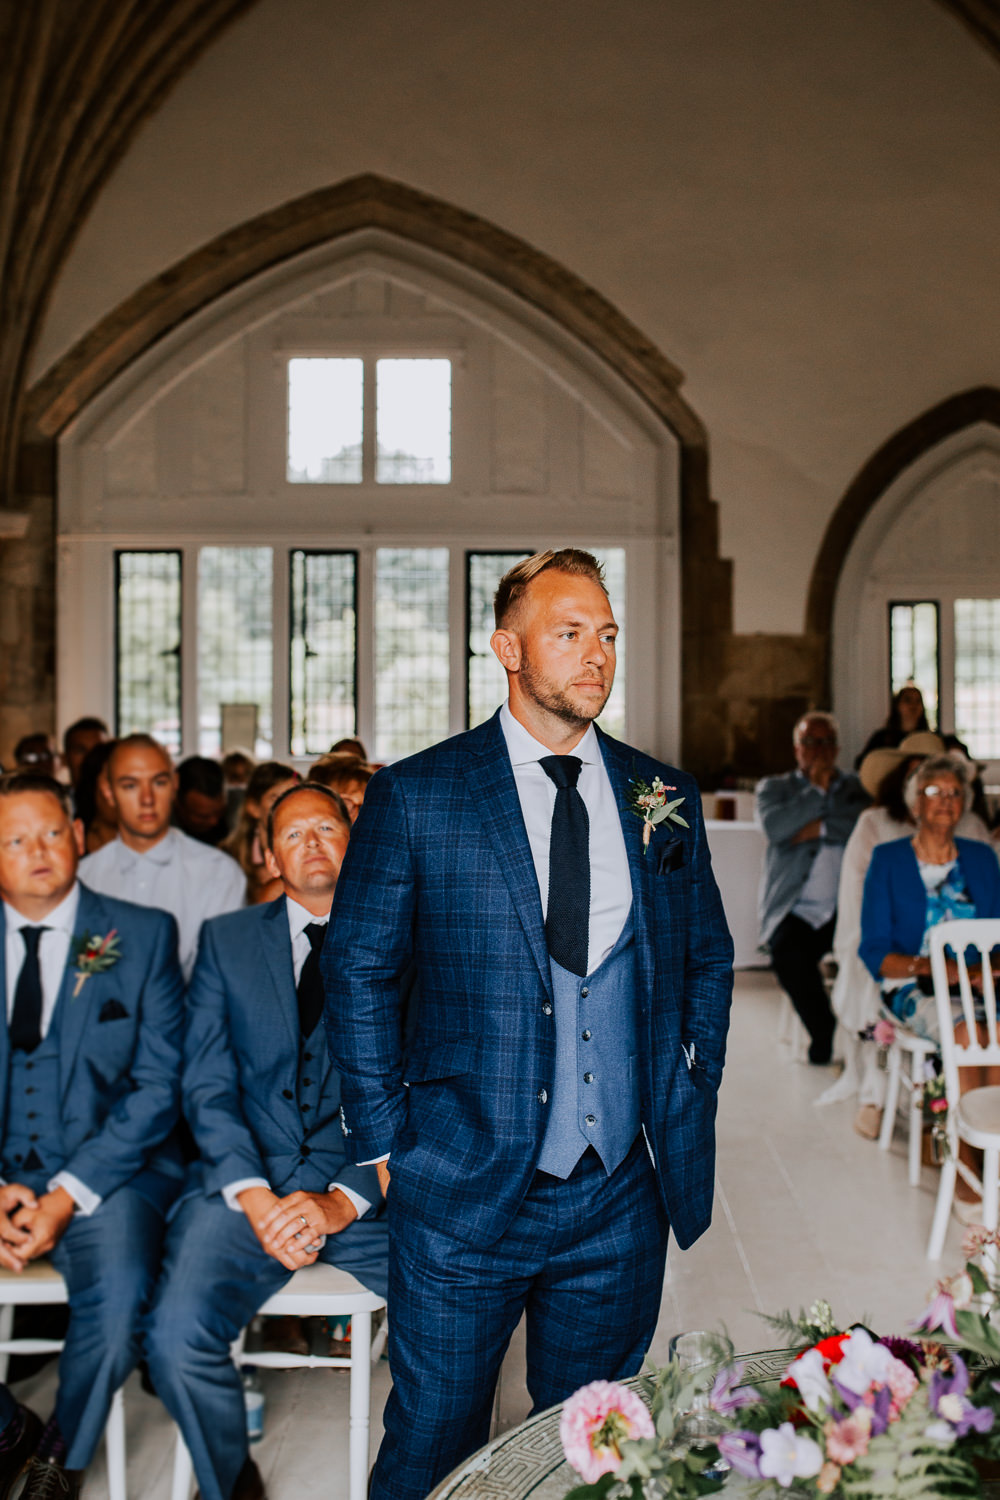 Groom Suit Blue Buttonhole Tie Waistcoat Butley Priory Wedding Sally Rawlins Photography